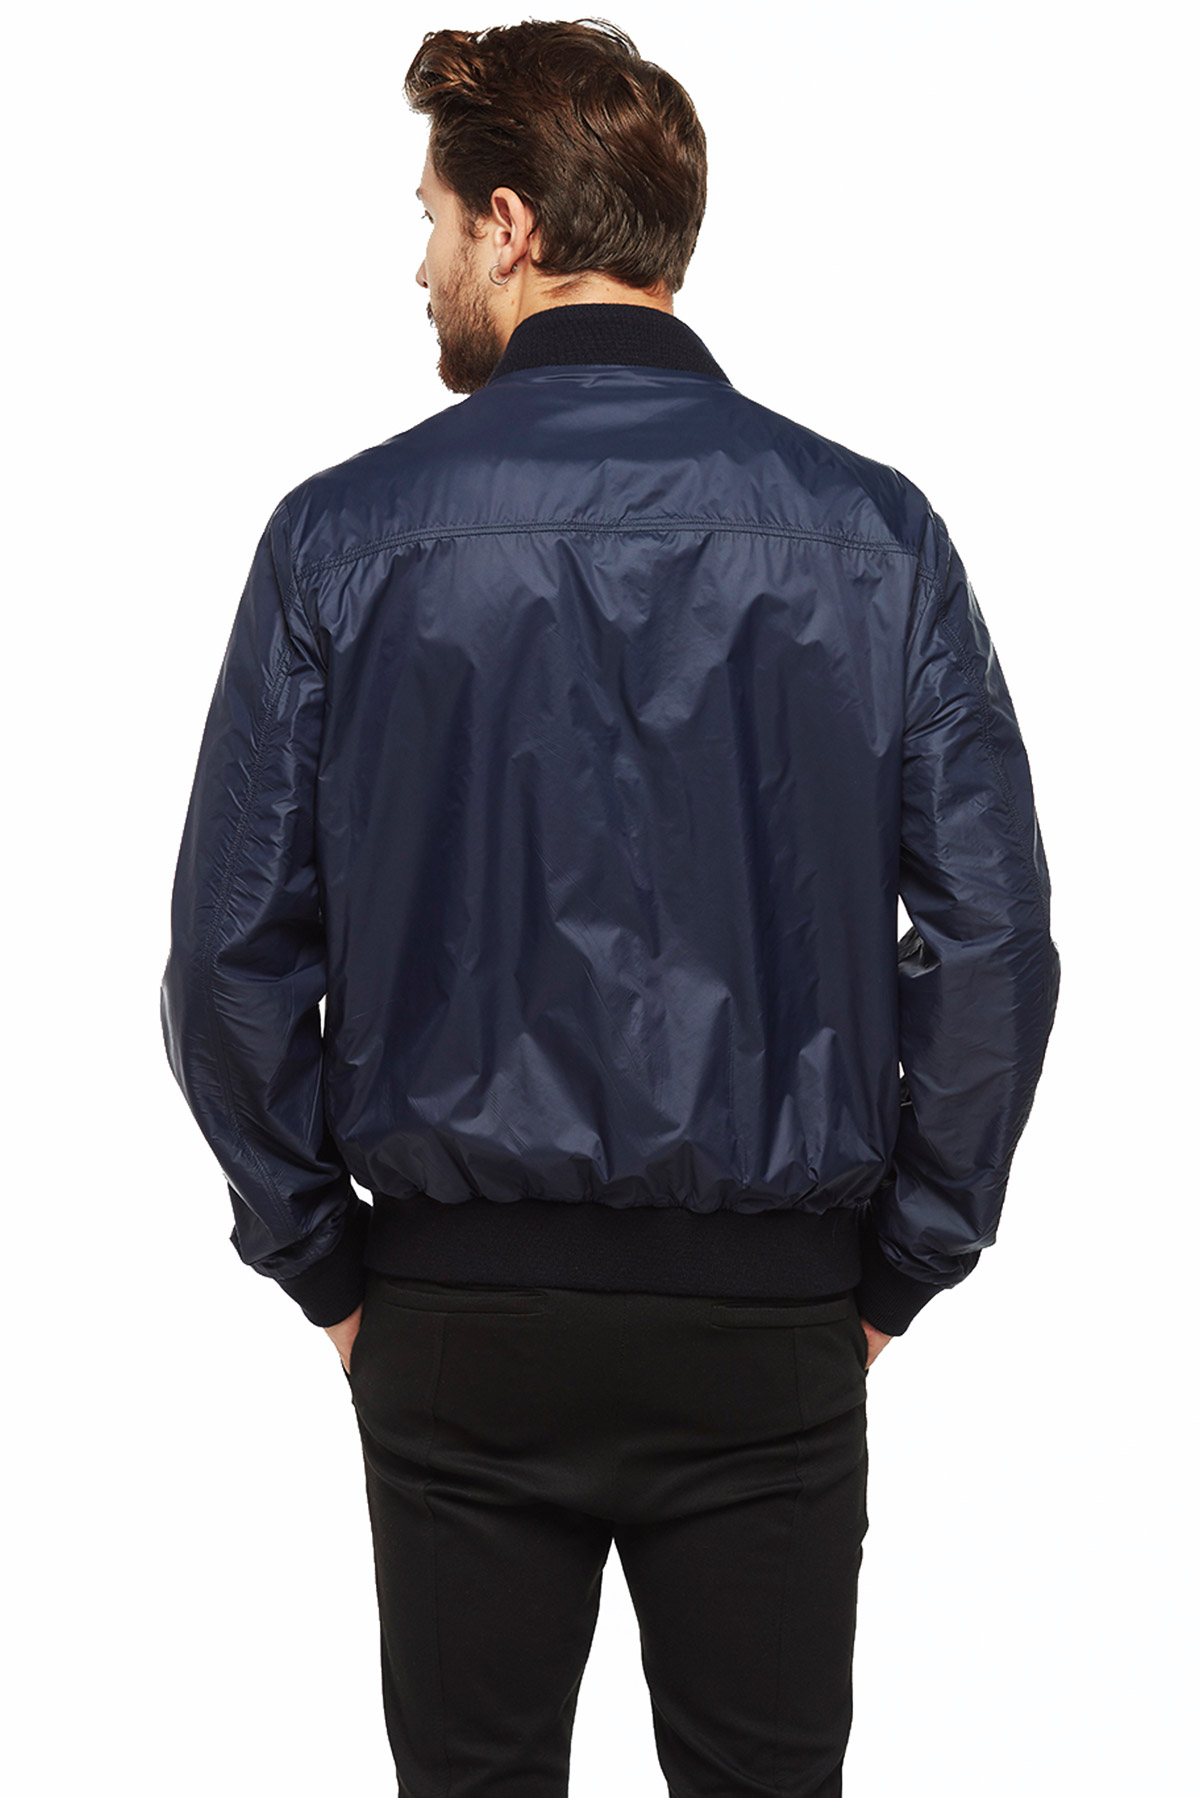 real leather jacket river island